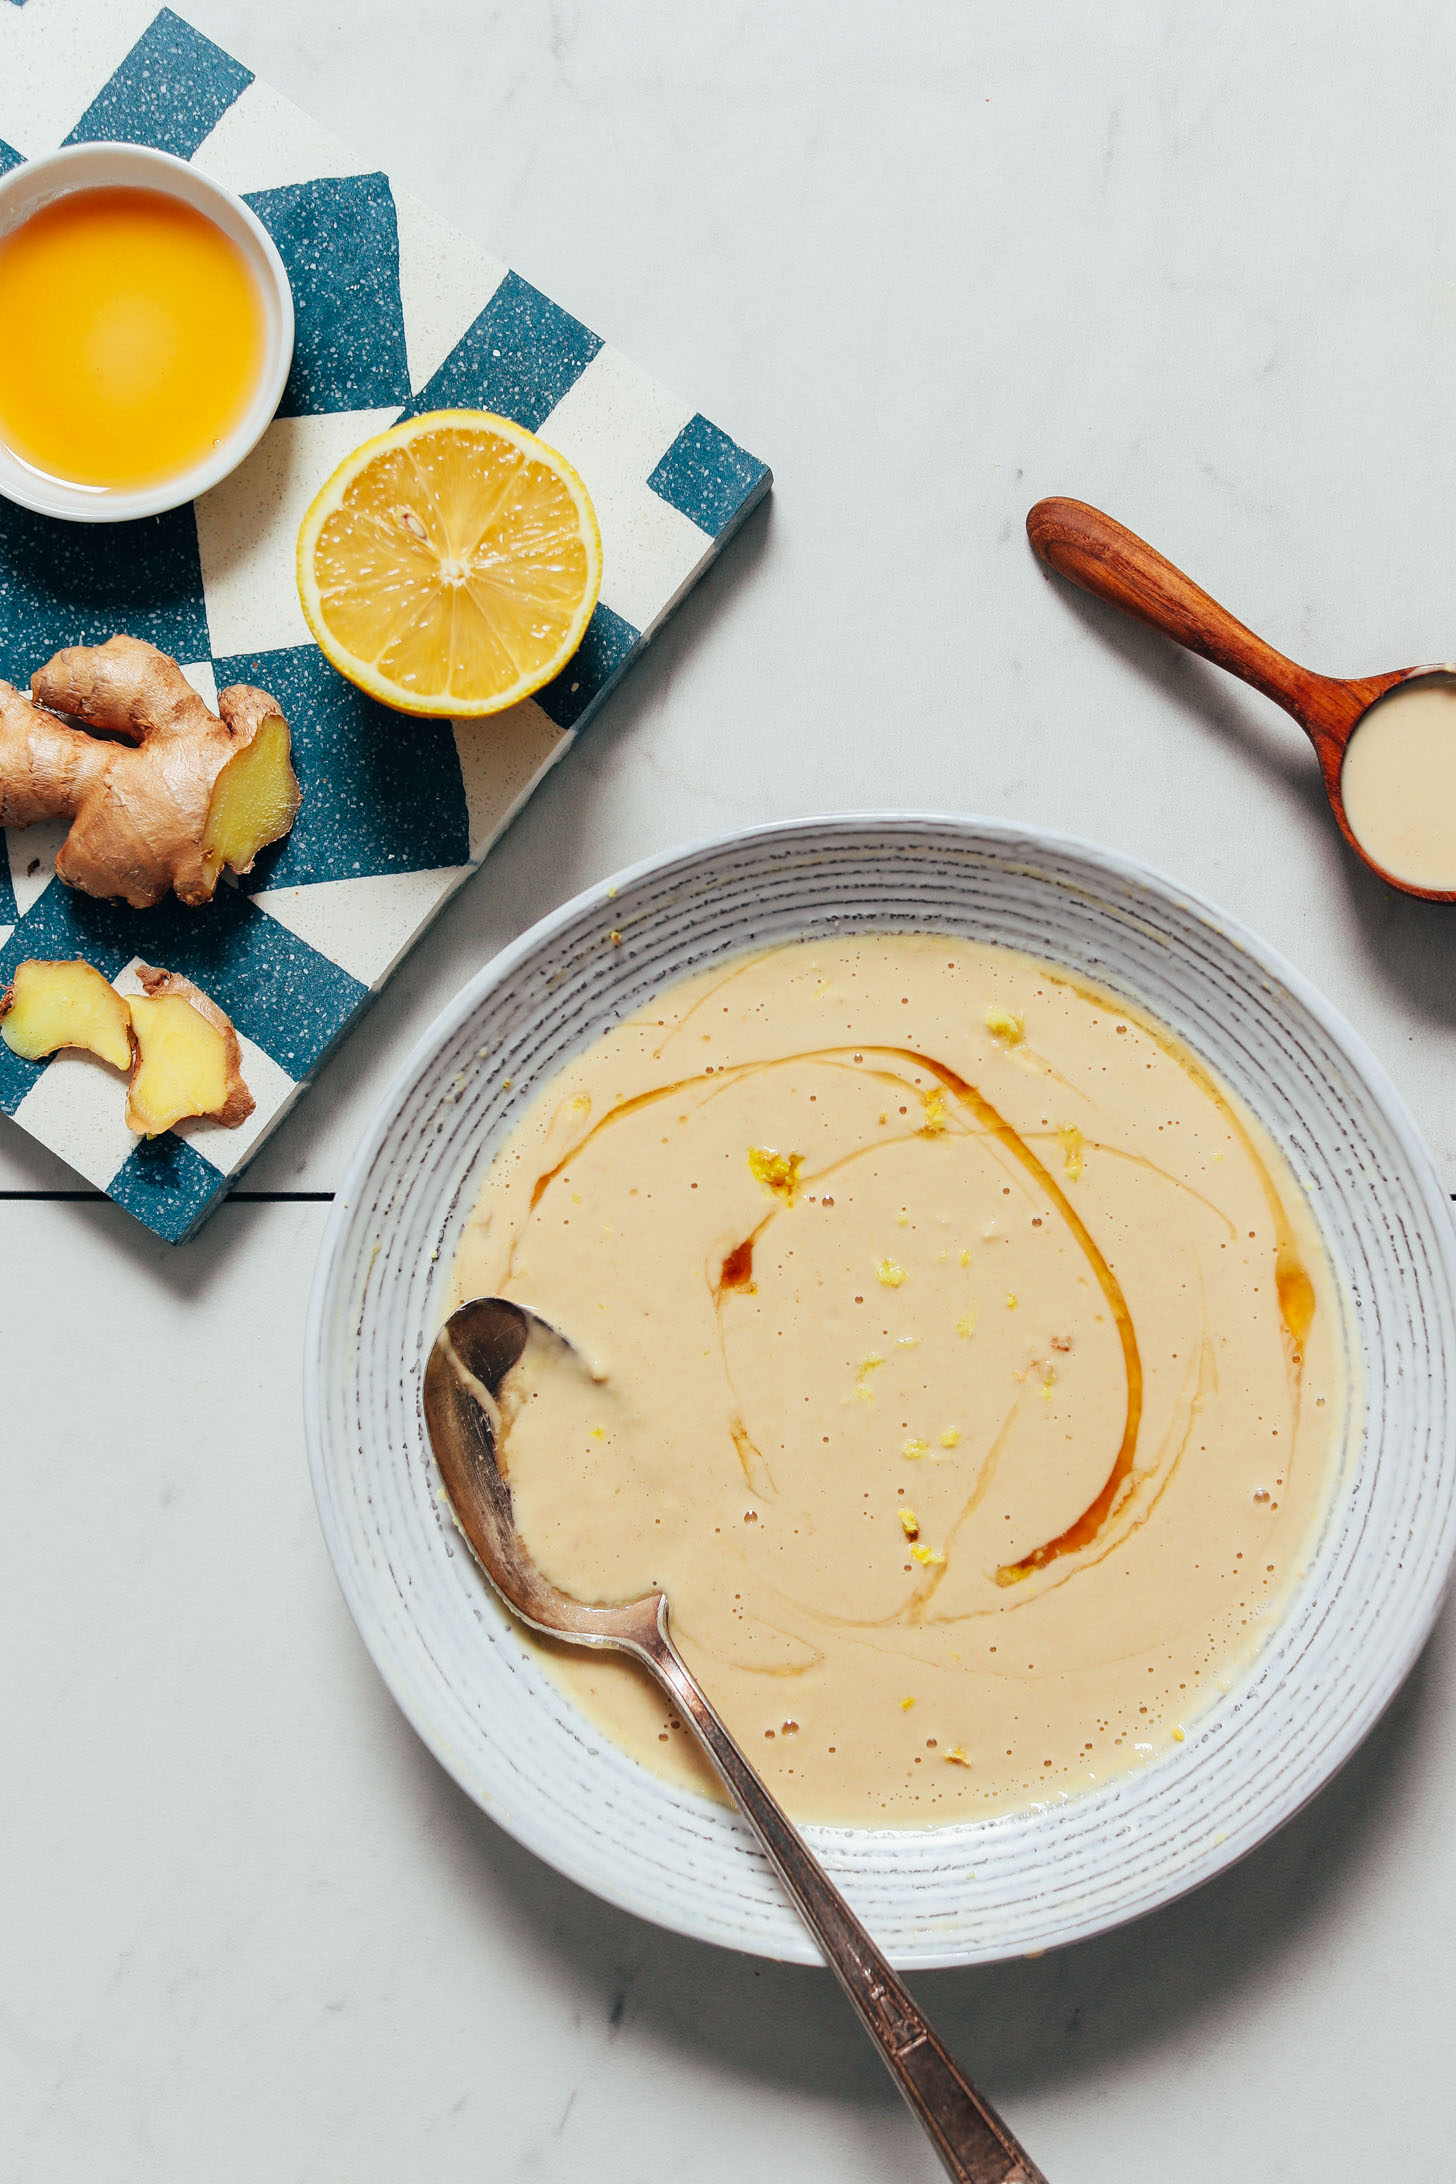 Lemon half, sliced ginger, maple syrup, and tahini beside a bowl of our Gingery Lemon Tahini Sauce recipe